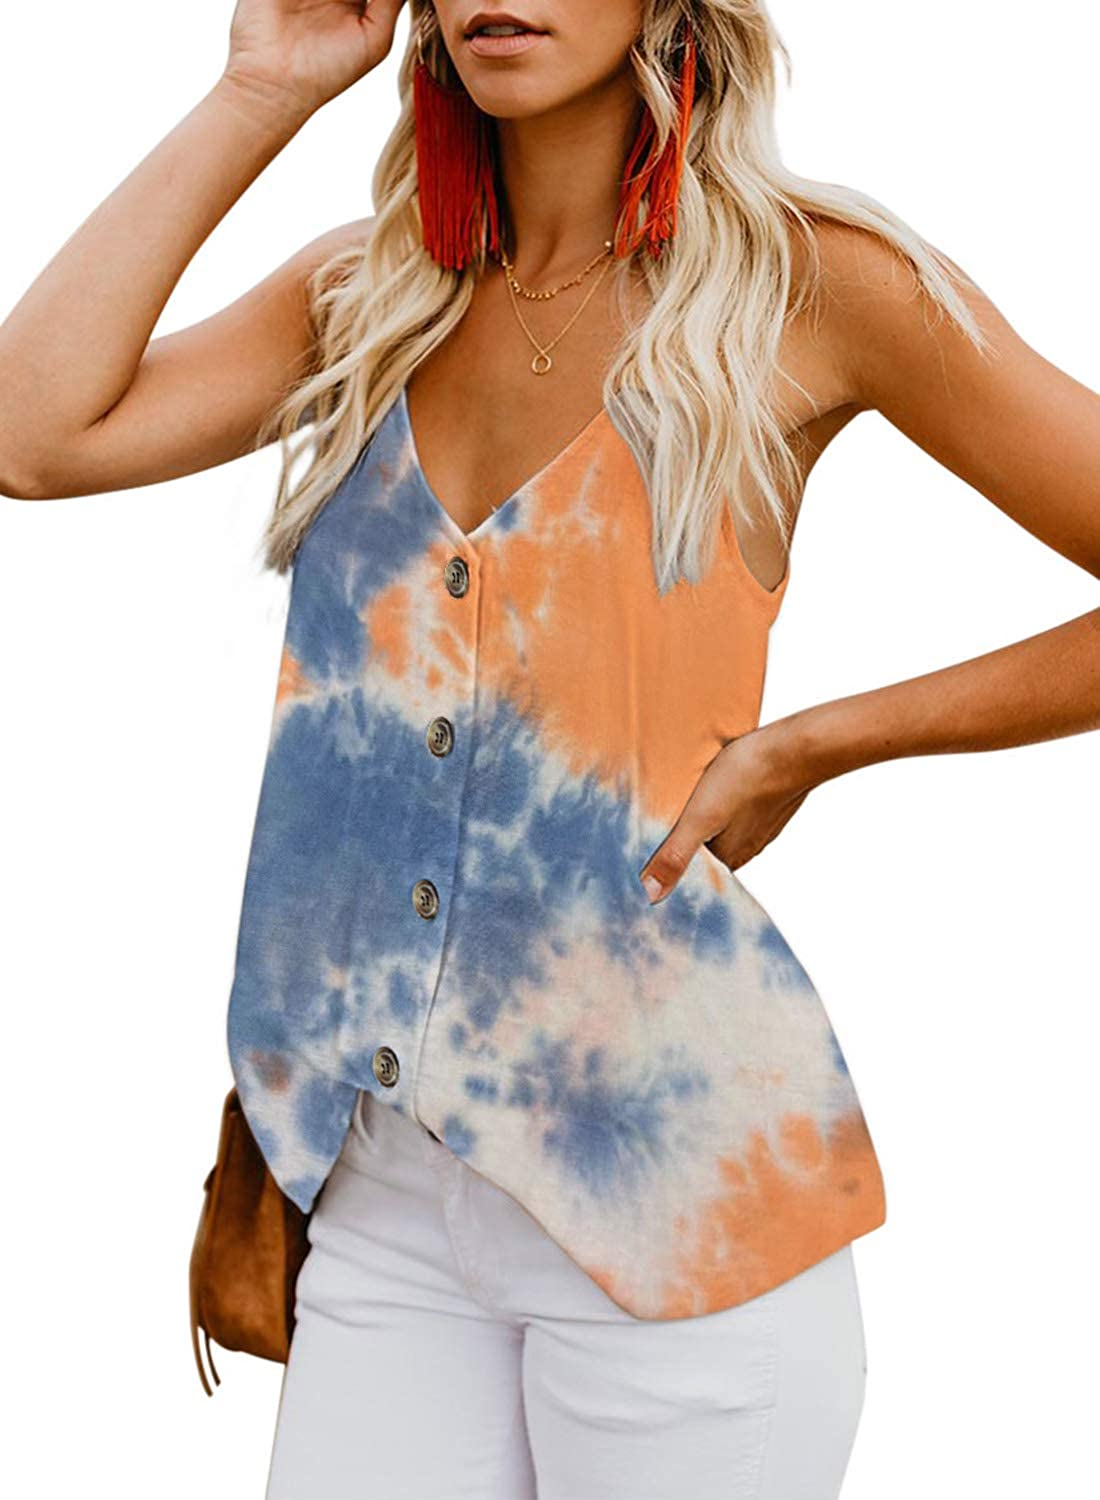 BLENCOT Womens Button Down V Neck Strappy Tank Tops Loose Casual Sleeveless Shirts Blouses